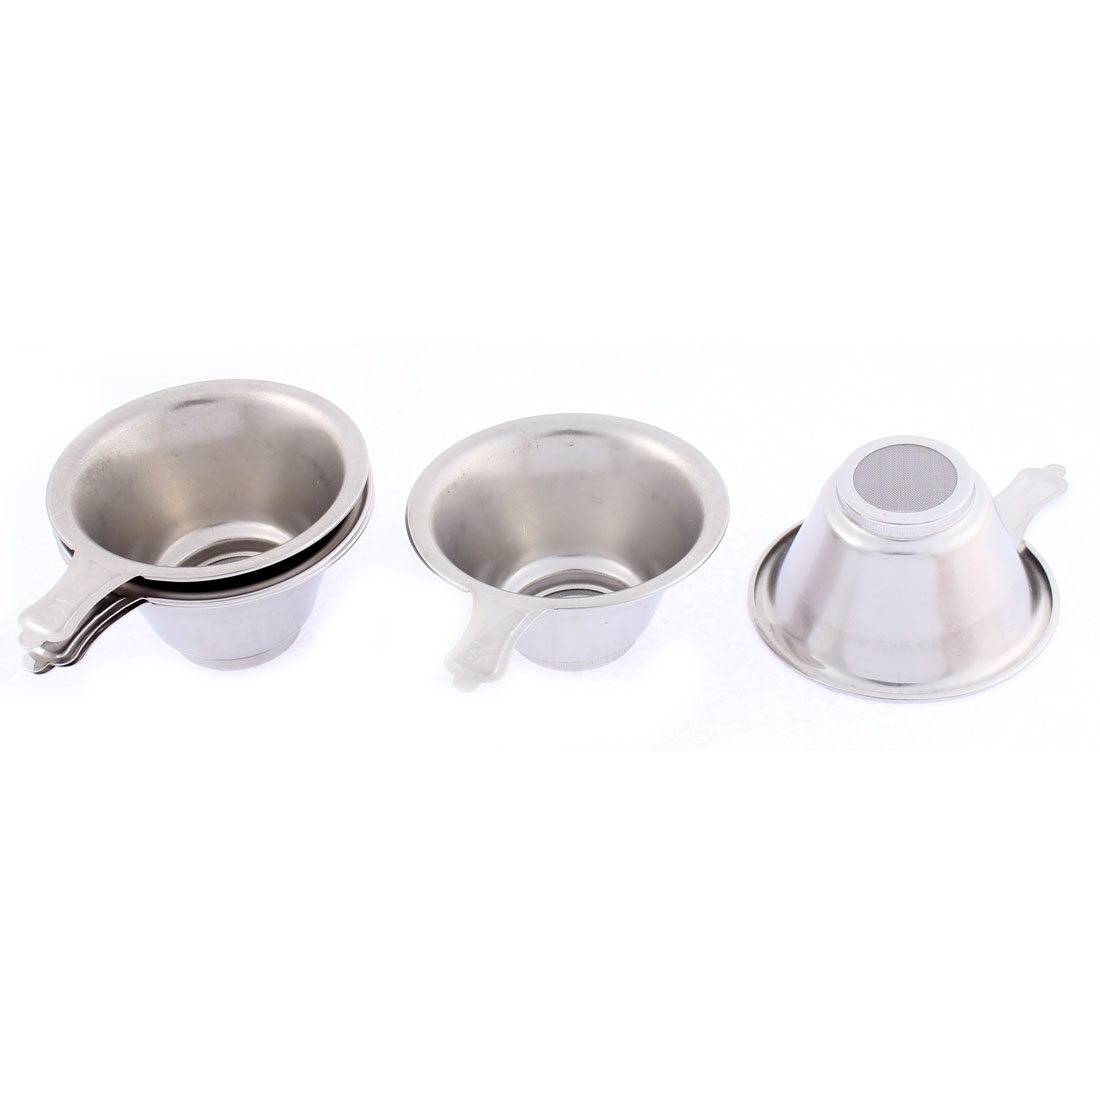 Household Stainless Steel Mesh Bottom Tea Bowl Strainer 74mm Dia 5 Pcs